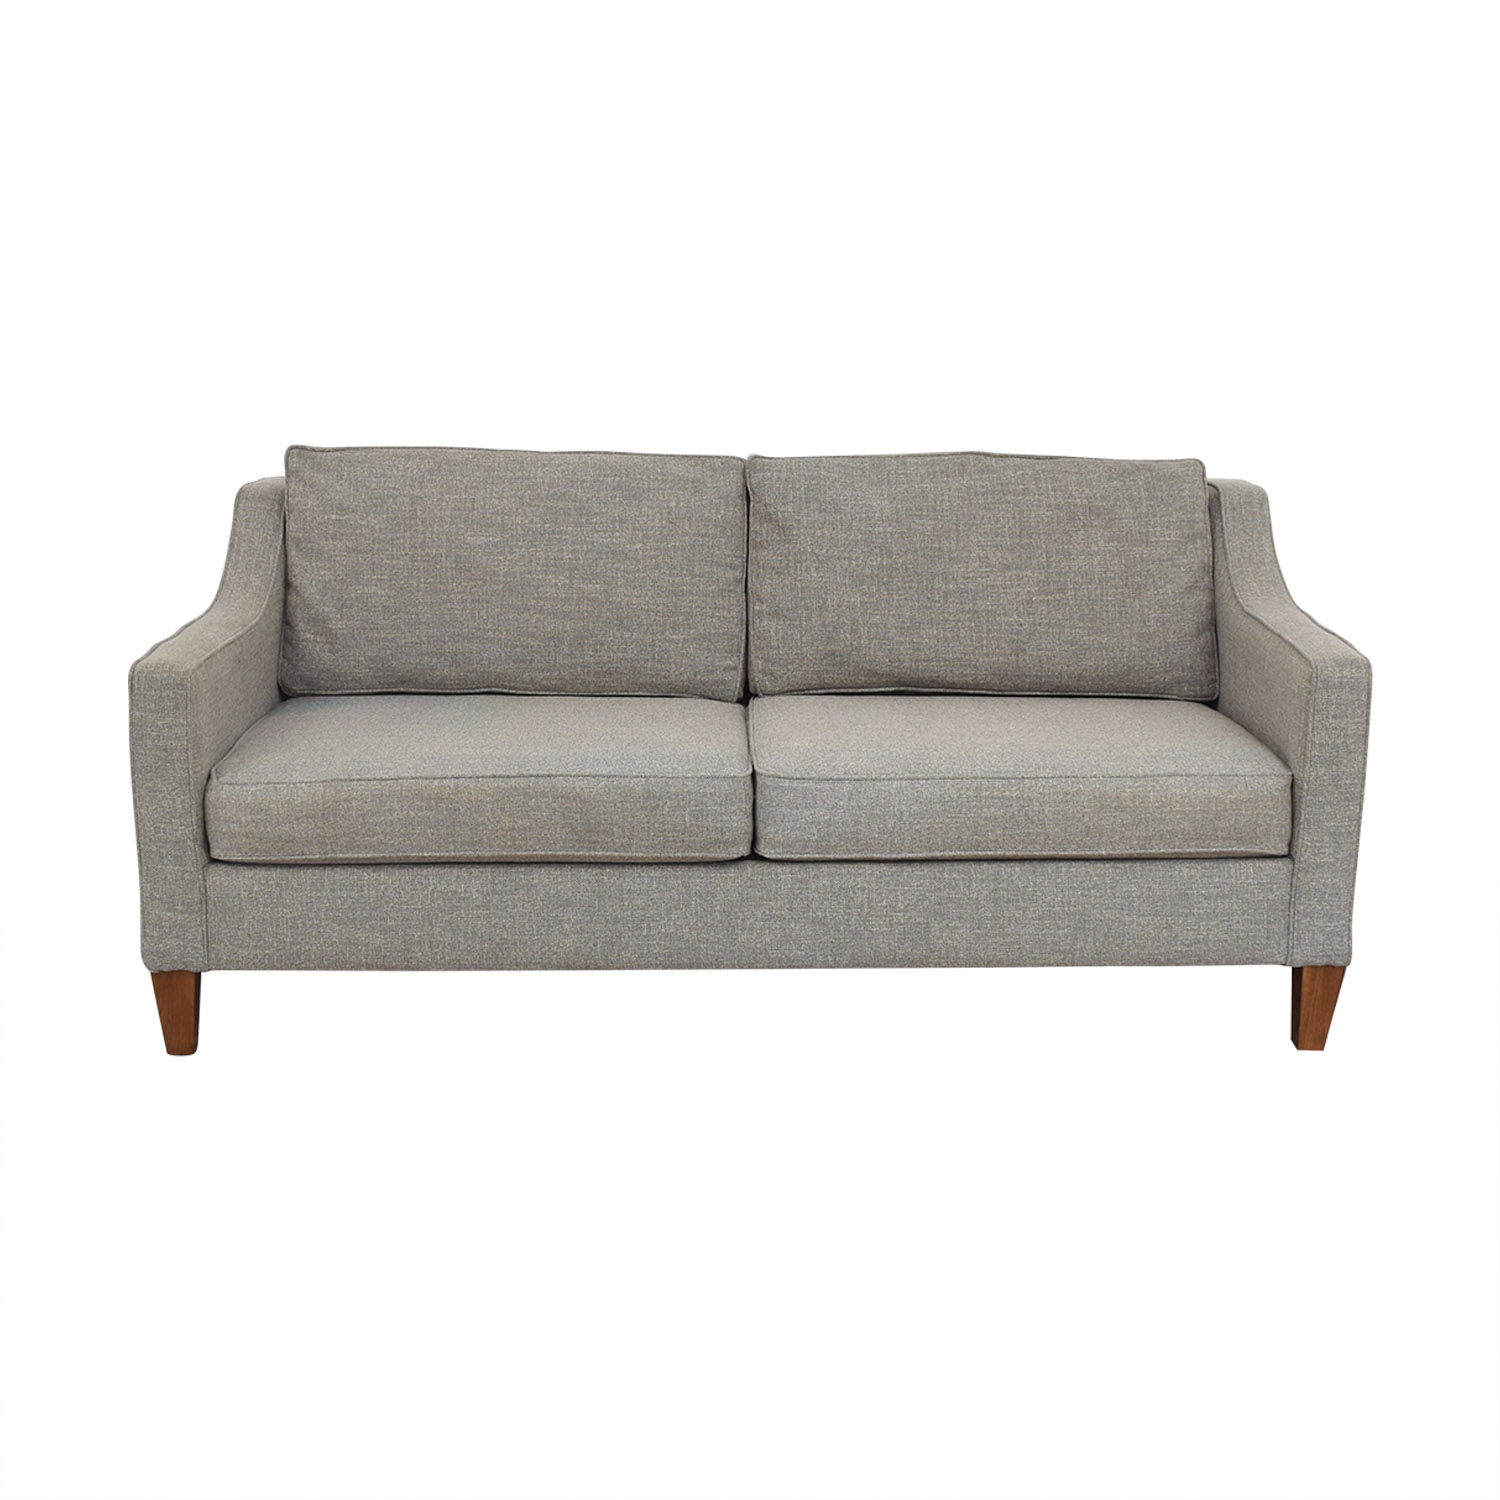 West Elm West Elm Paidge Sofa on sale